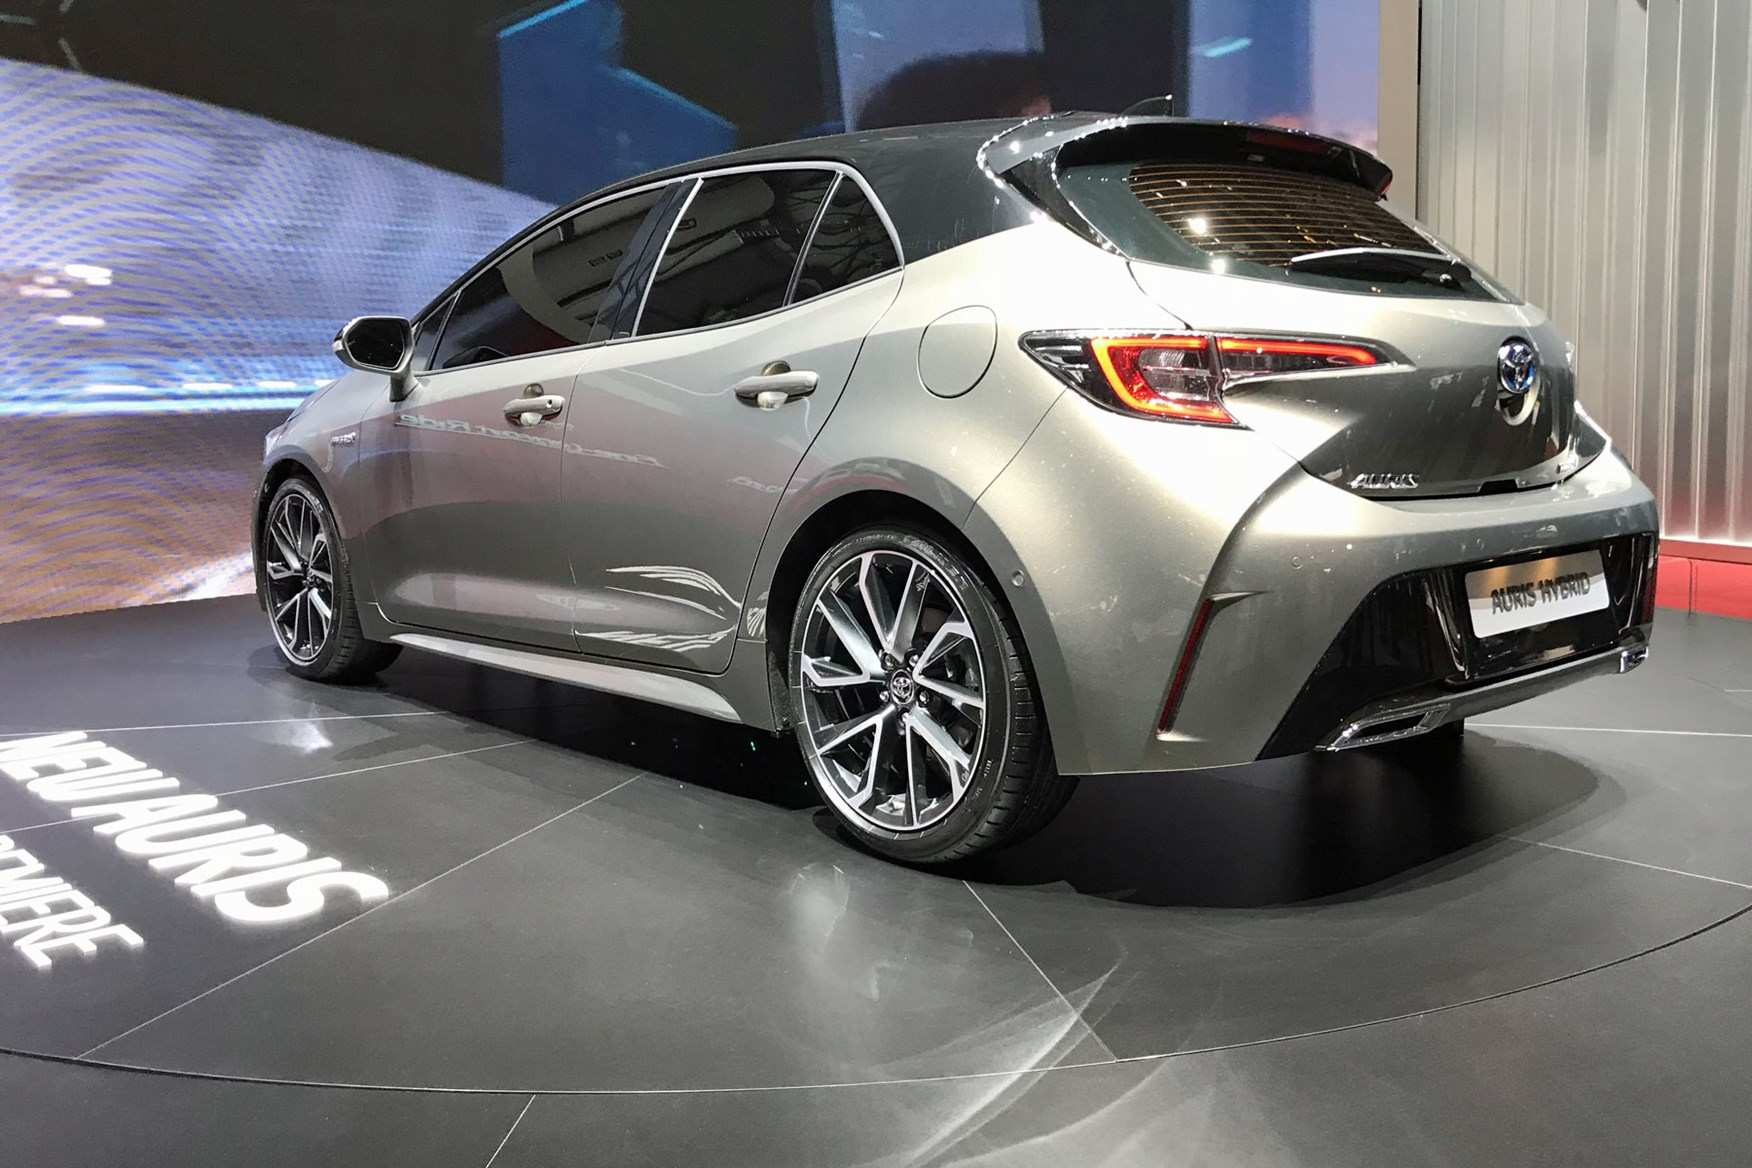 83 The Toyota Auris 2019 Release Date History